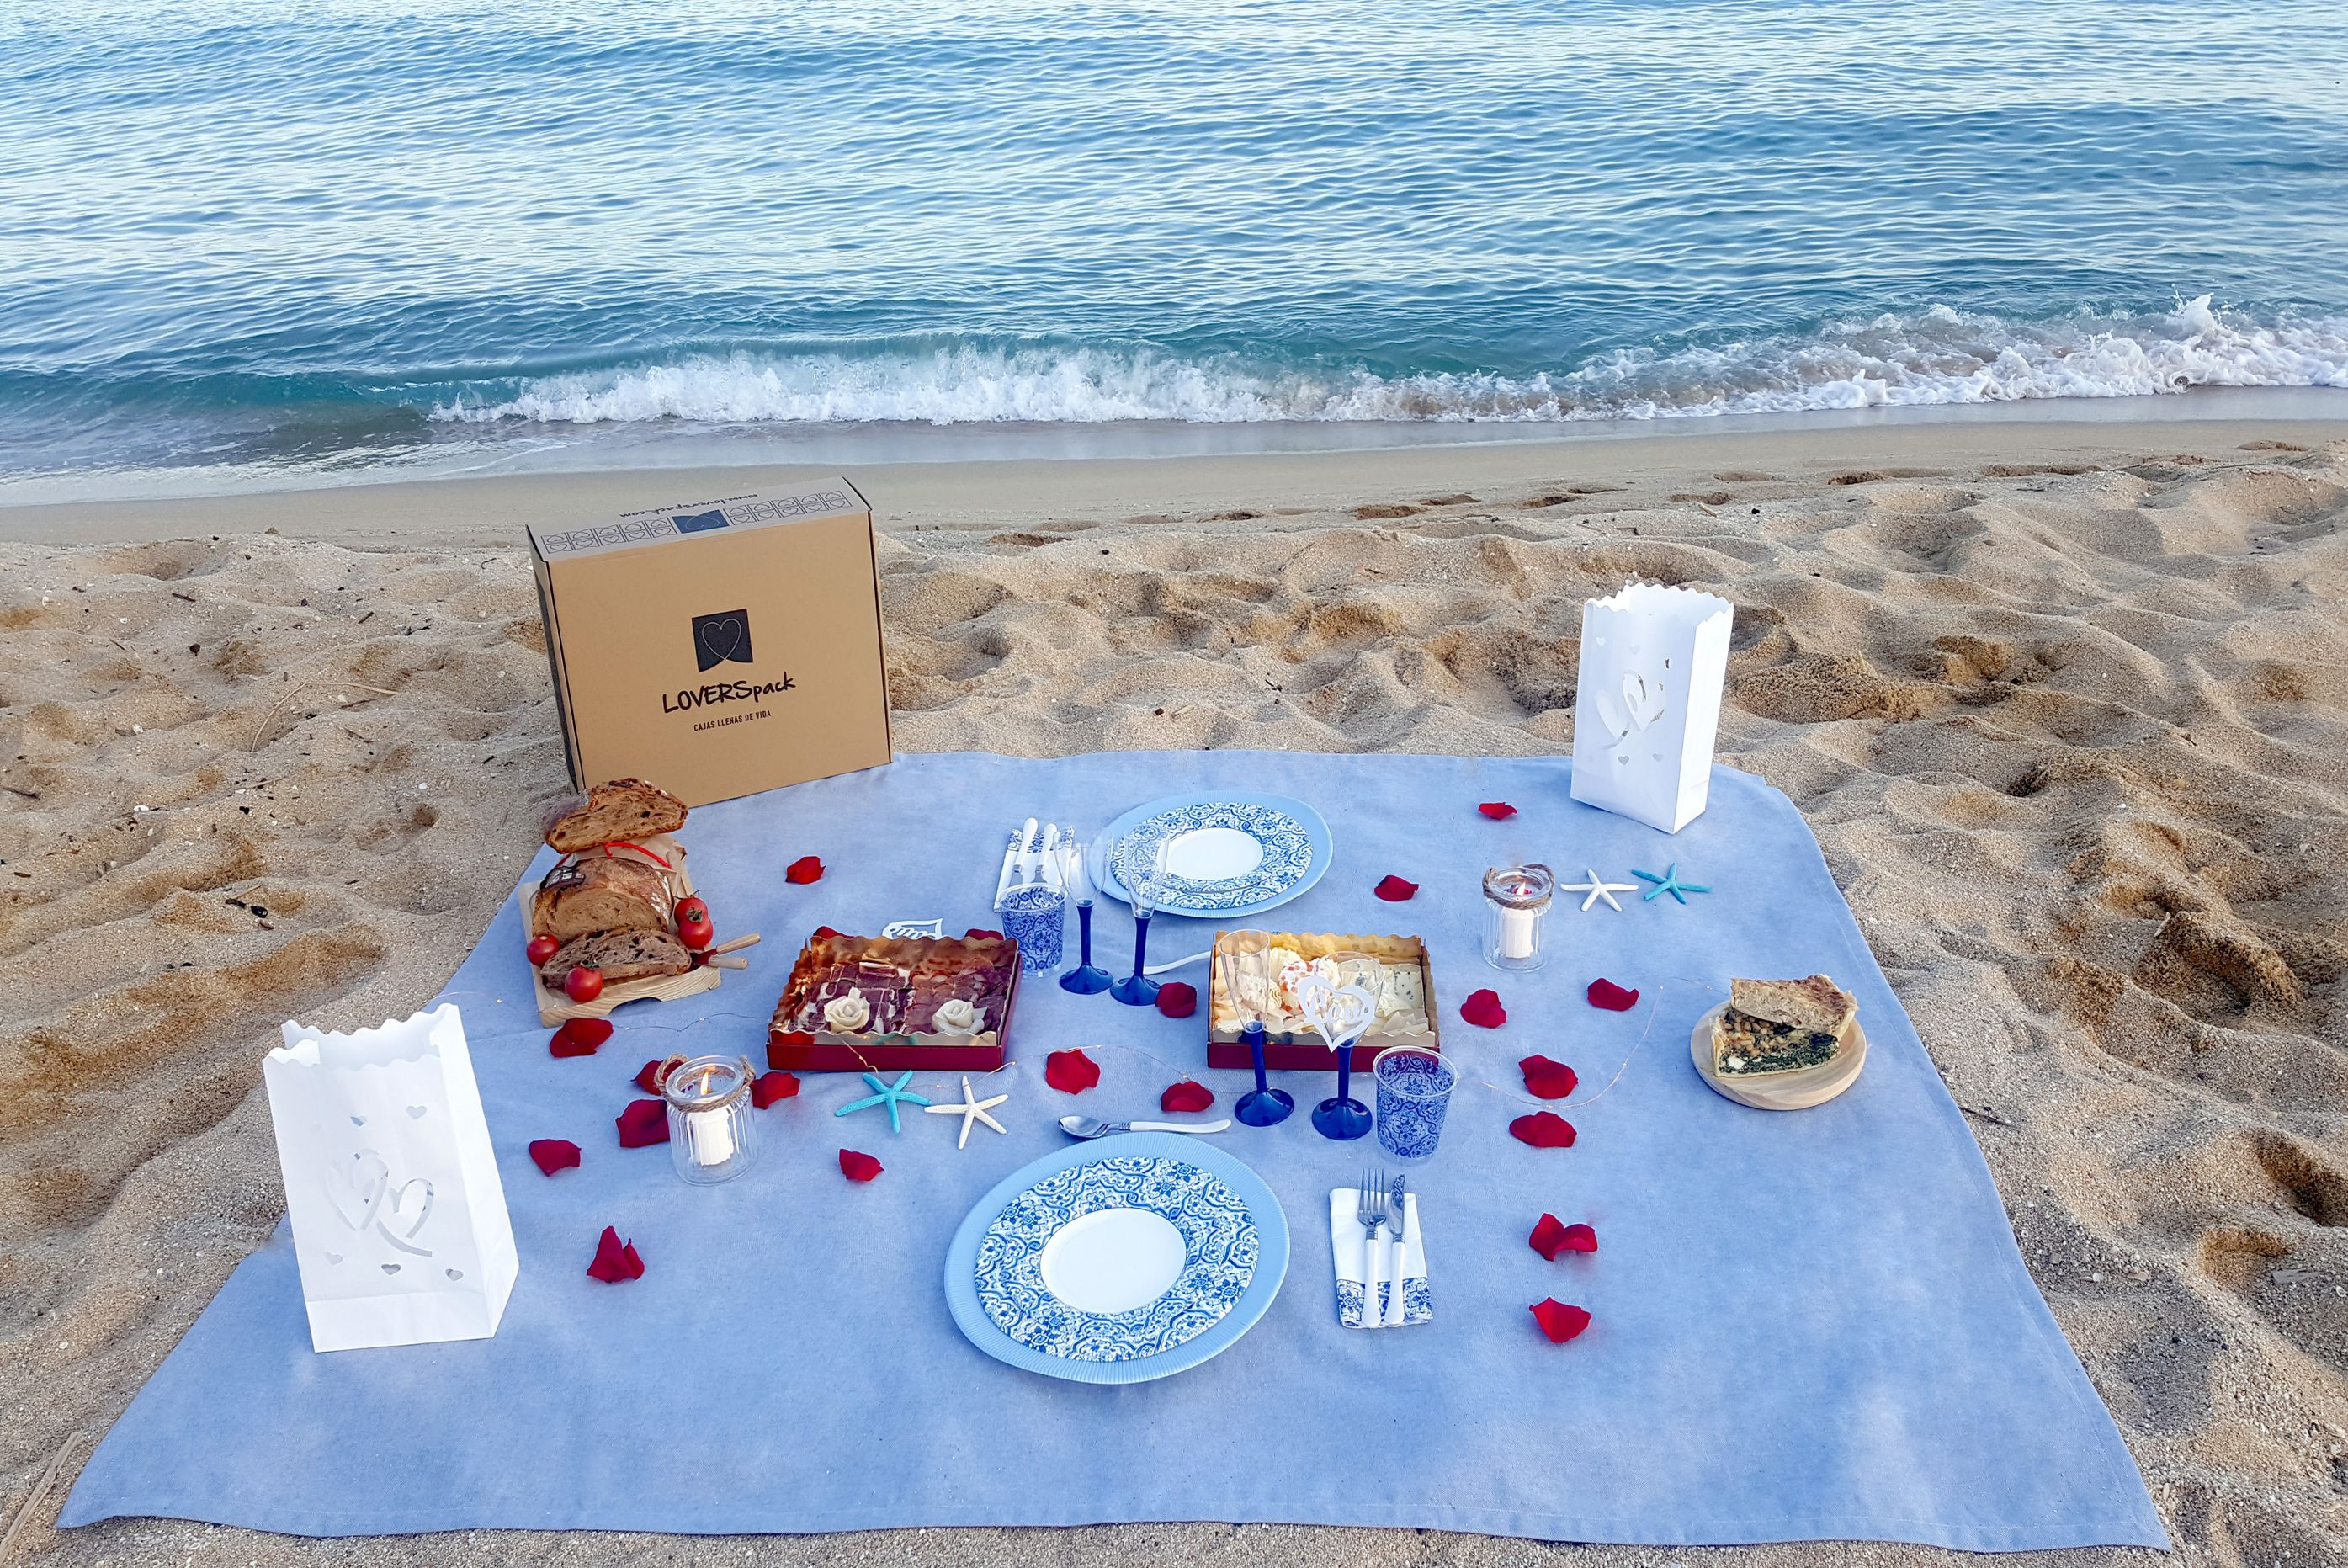 Picnic Romántico Playa- Calima Outdoor Pack - Loverspack